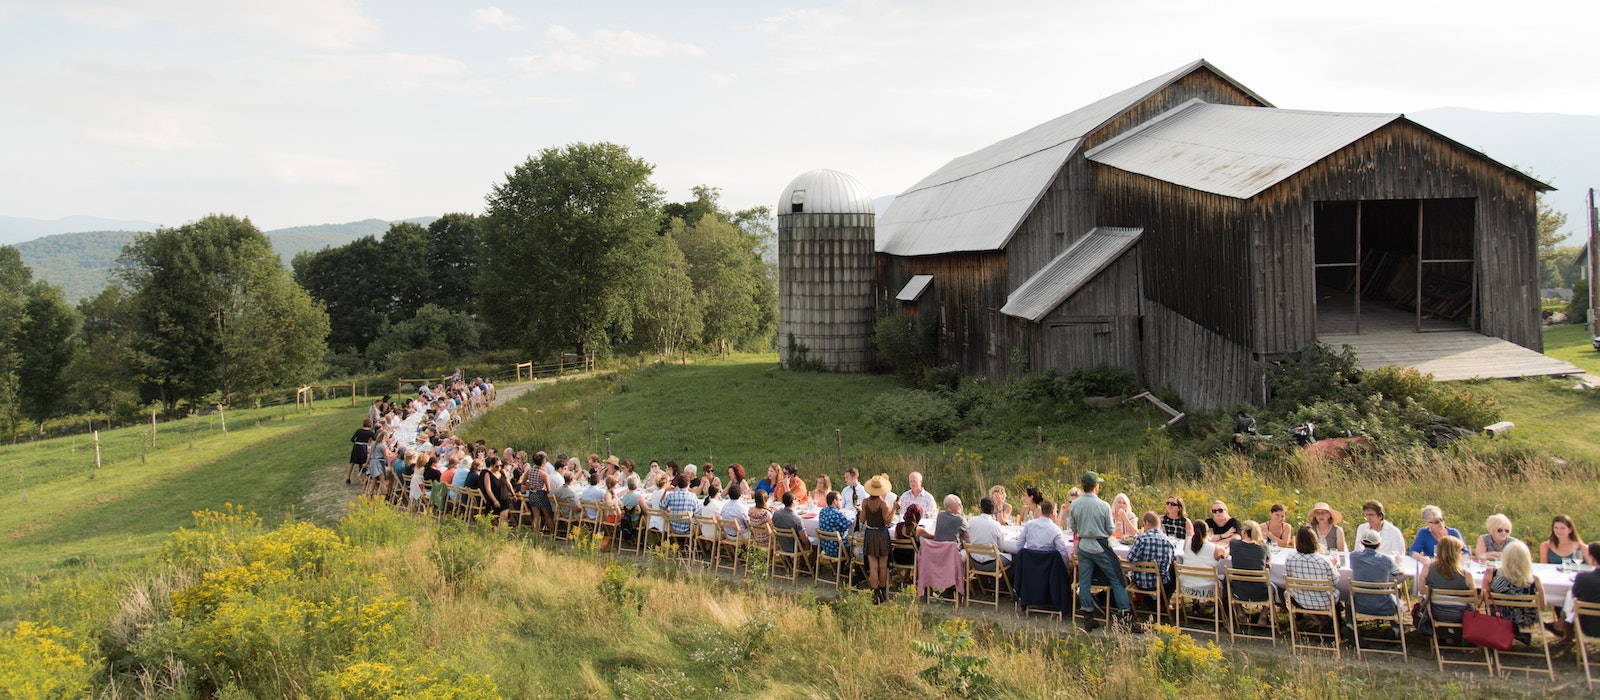 Outstanding in the Field farm dinners have taken place all over the world, including Vermont's Ploughgate Creamery (pictured here).